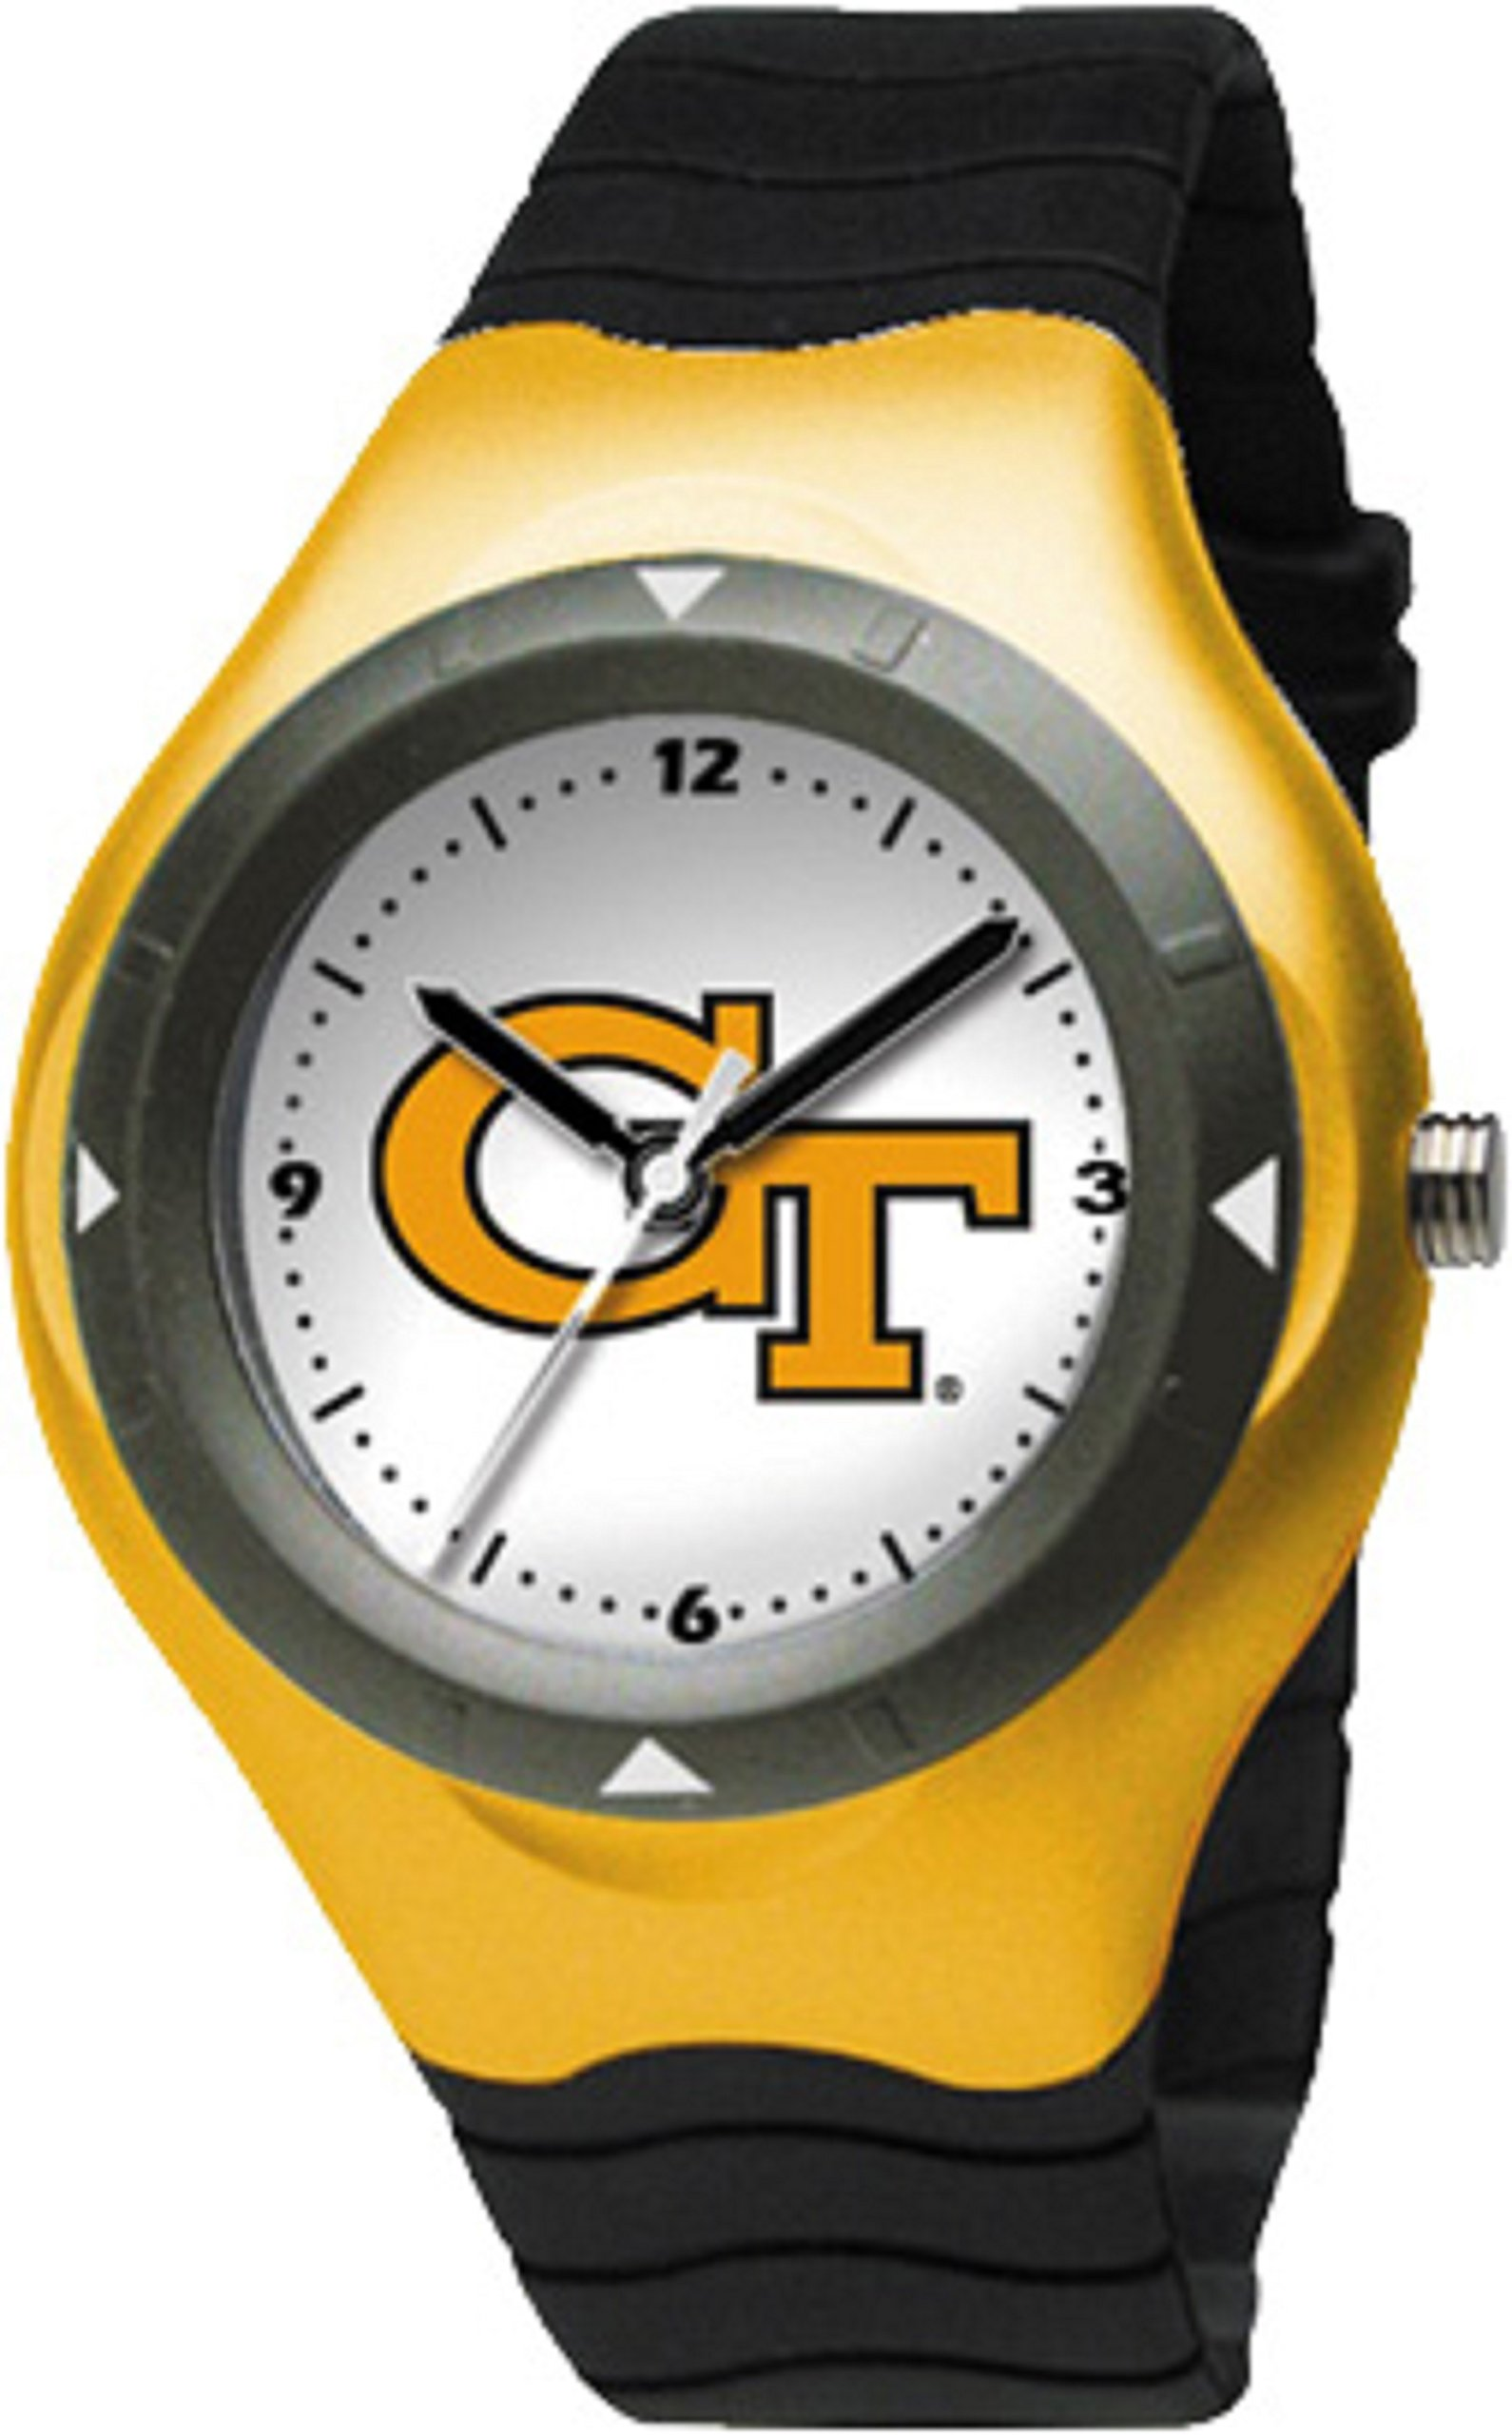 GEORGIA TECH YELLOW JACKETS watch for boy's ladies / youth unisex justable Band 5 3/4 TO 8 free shipping by Georgia Tech